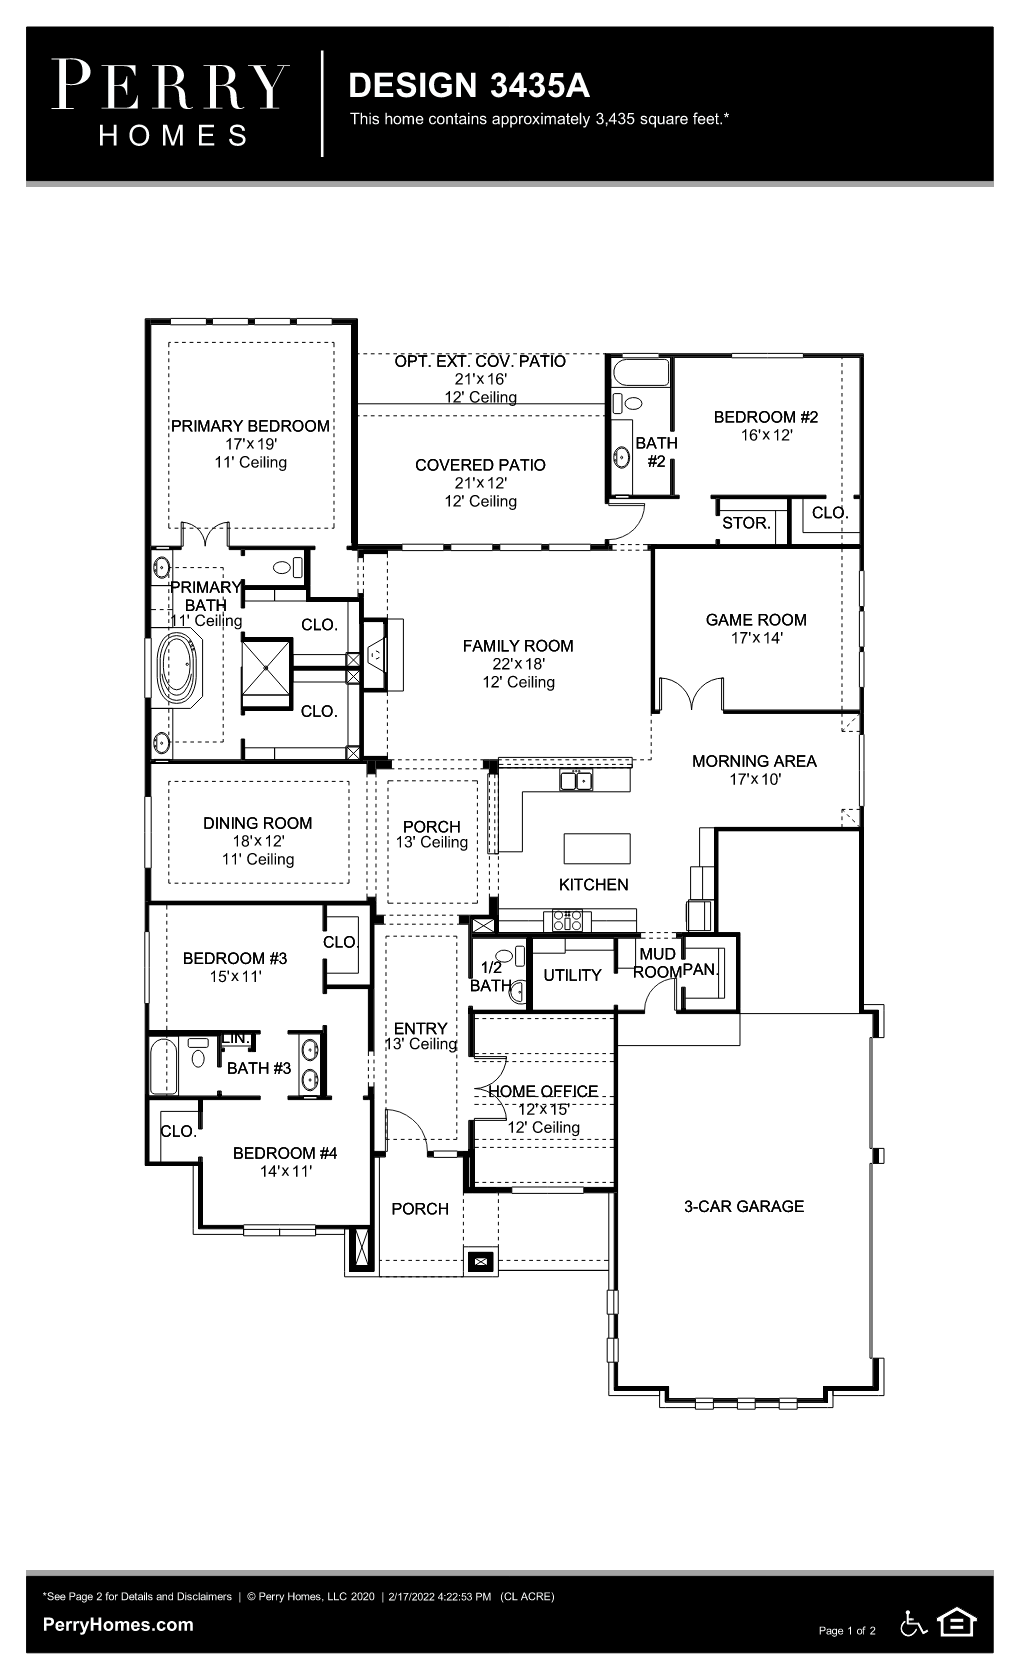 Floor Plan for 3435A